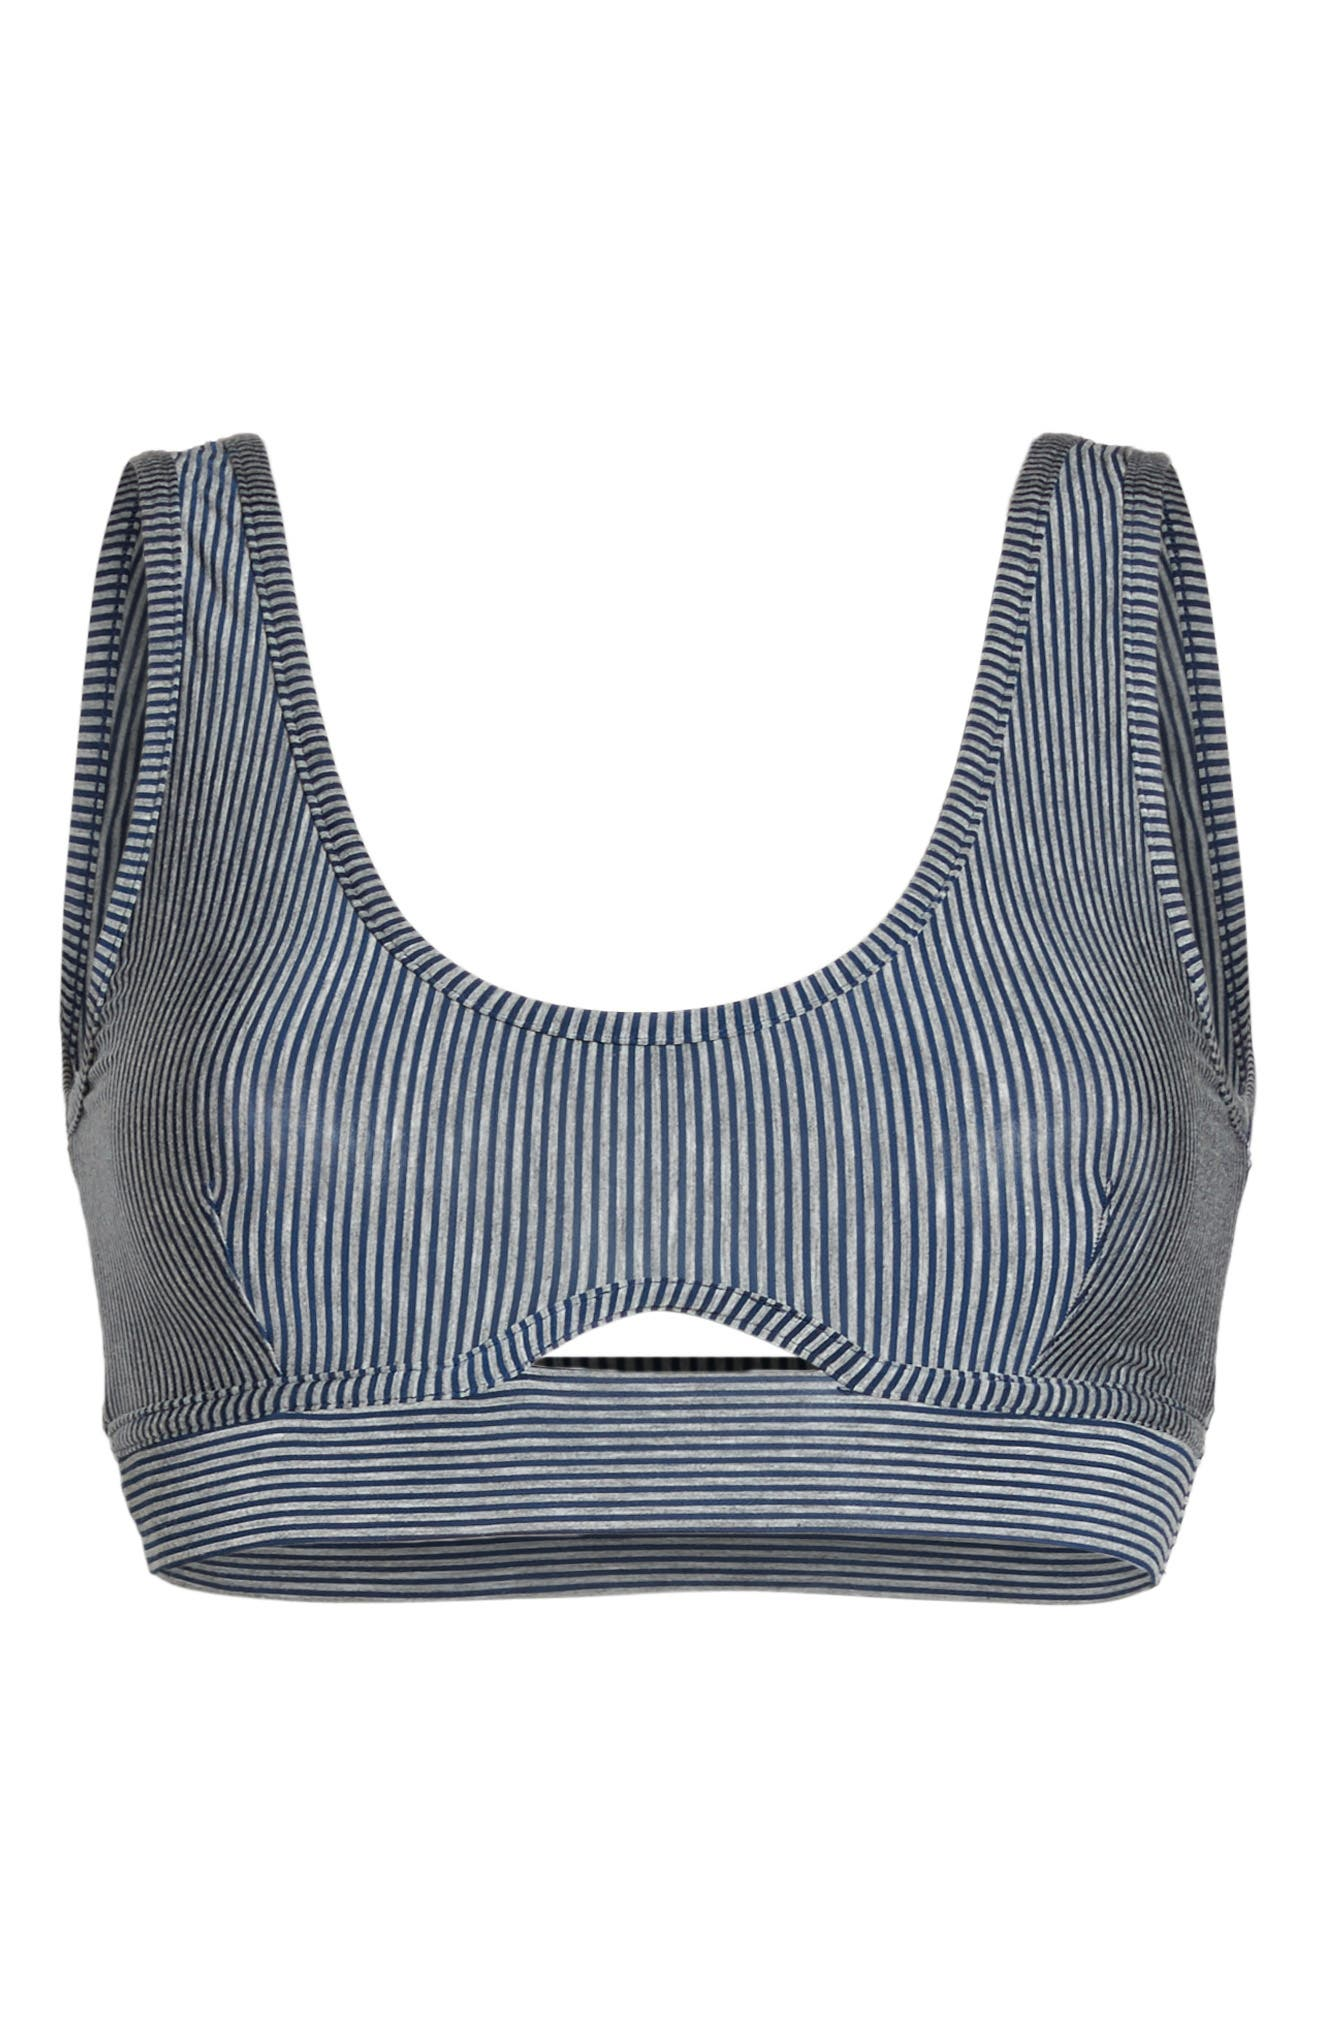 Amalfi Bralette,                             Alternate thumbnail 7, color,                             HEATHER GREY/ NAVY